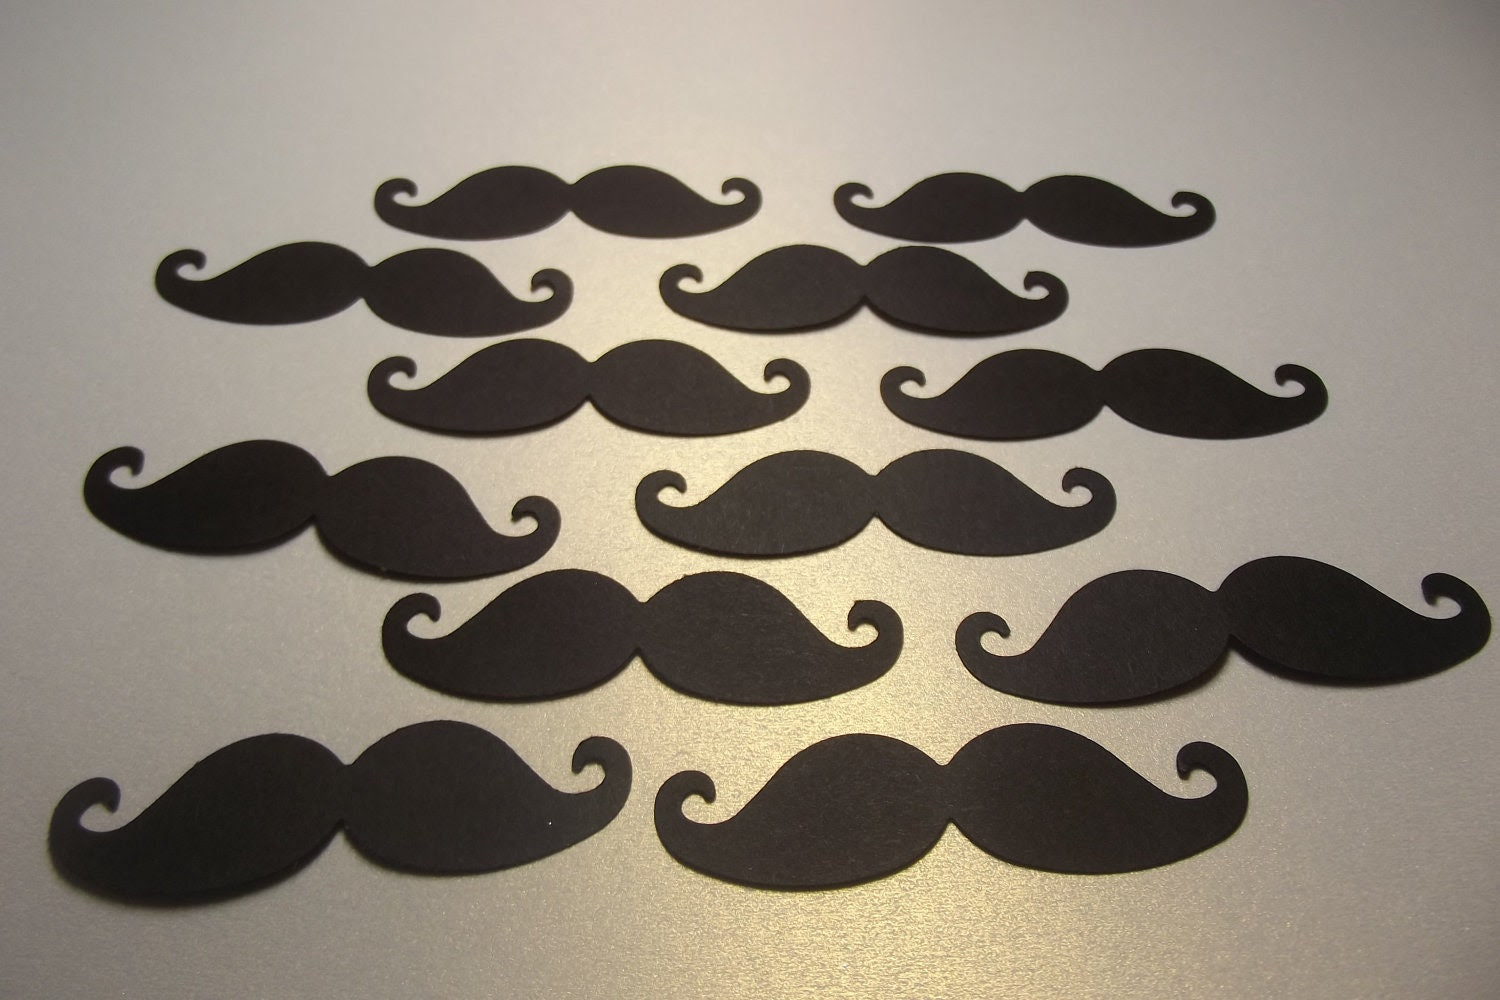 100 Black Mustache Diecuts/Table Confetti/Party Supplies/Embellishments - KelliesPaperPlace